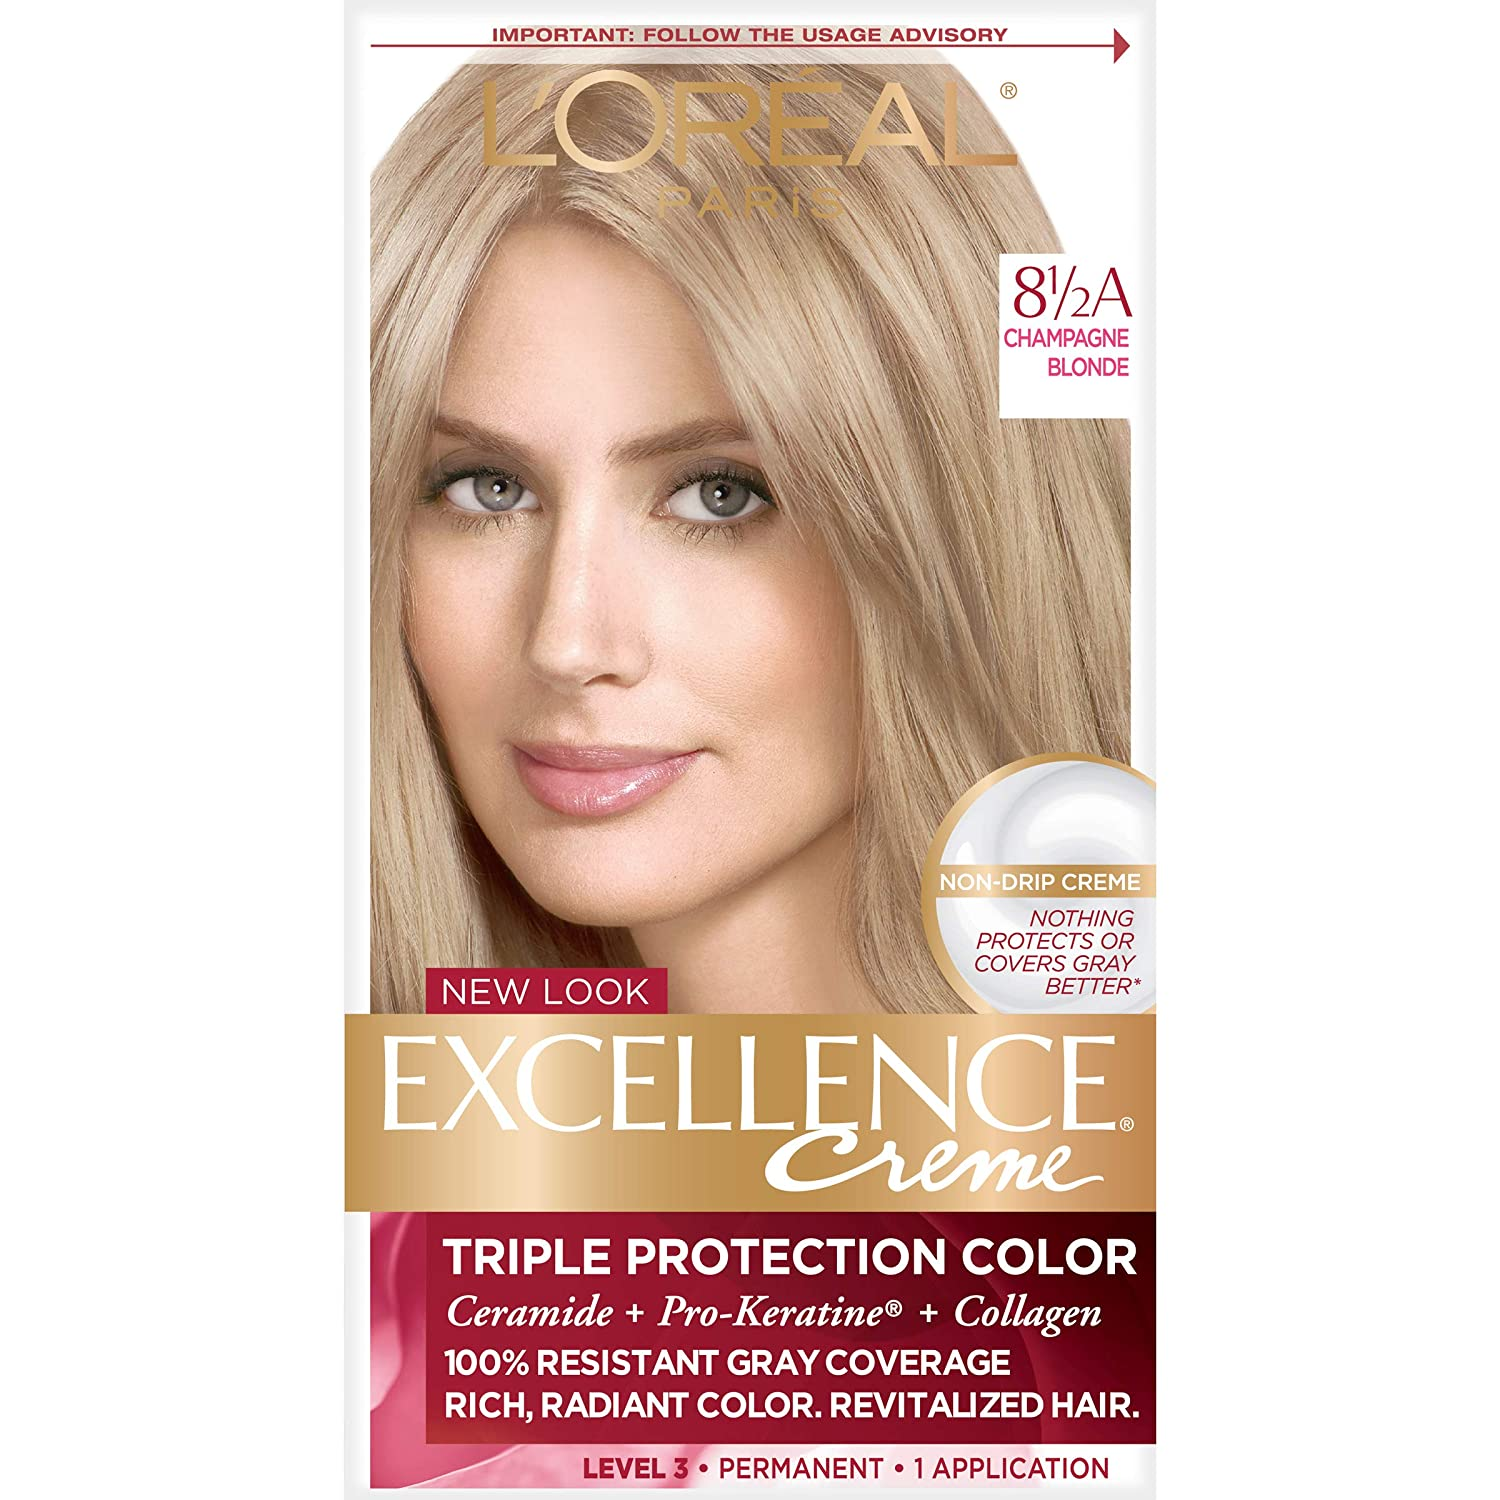 L'Oreal Paris Excellence Creme Permanent Hair Color, 8.5A Champagne Blonde, 100% Gray Coverage Hair Dye, Pack of 1 : Chemical Hair Dyes : Beauty